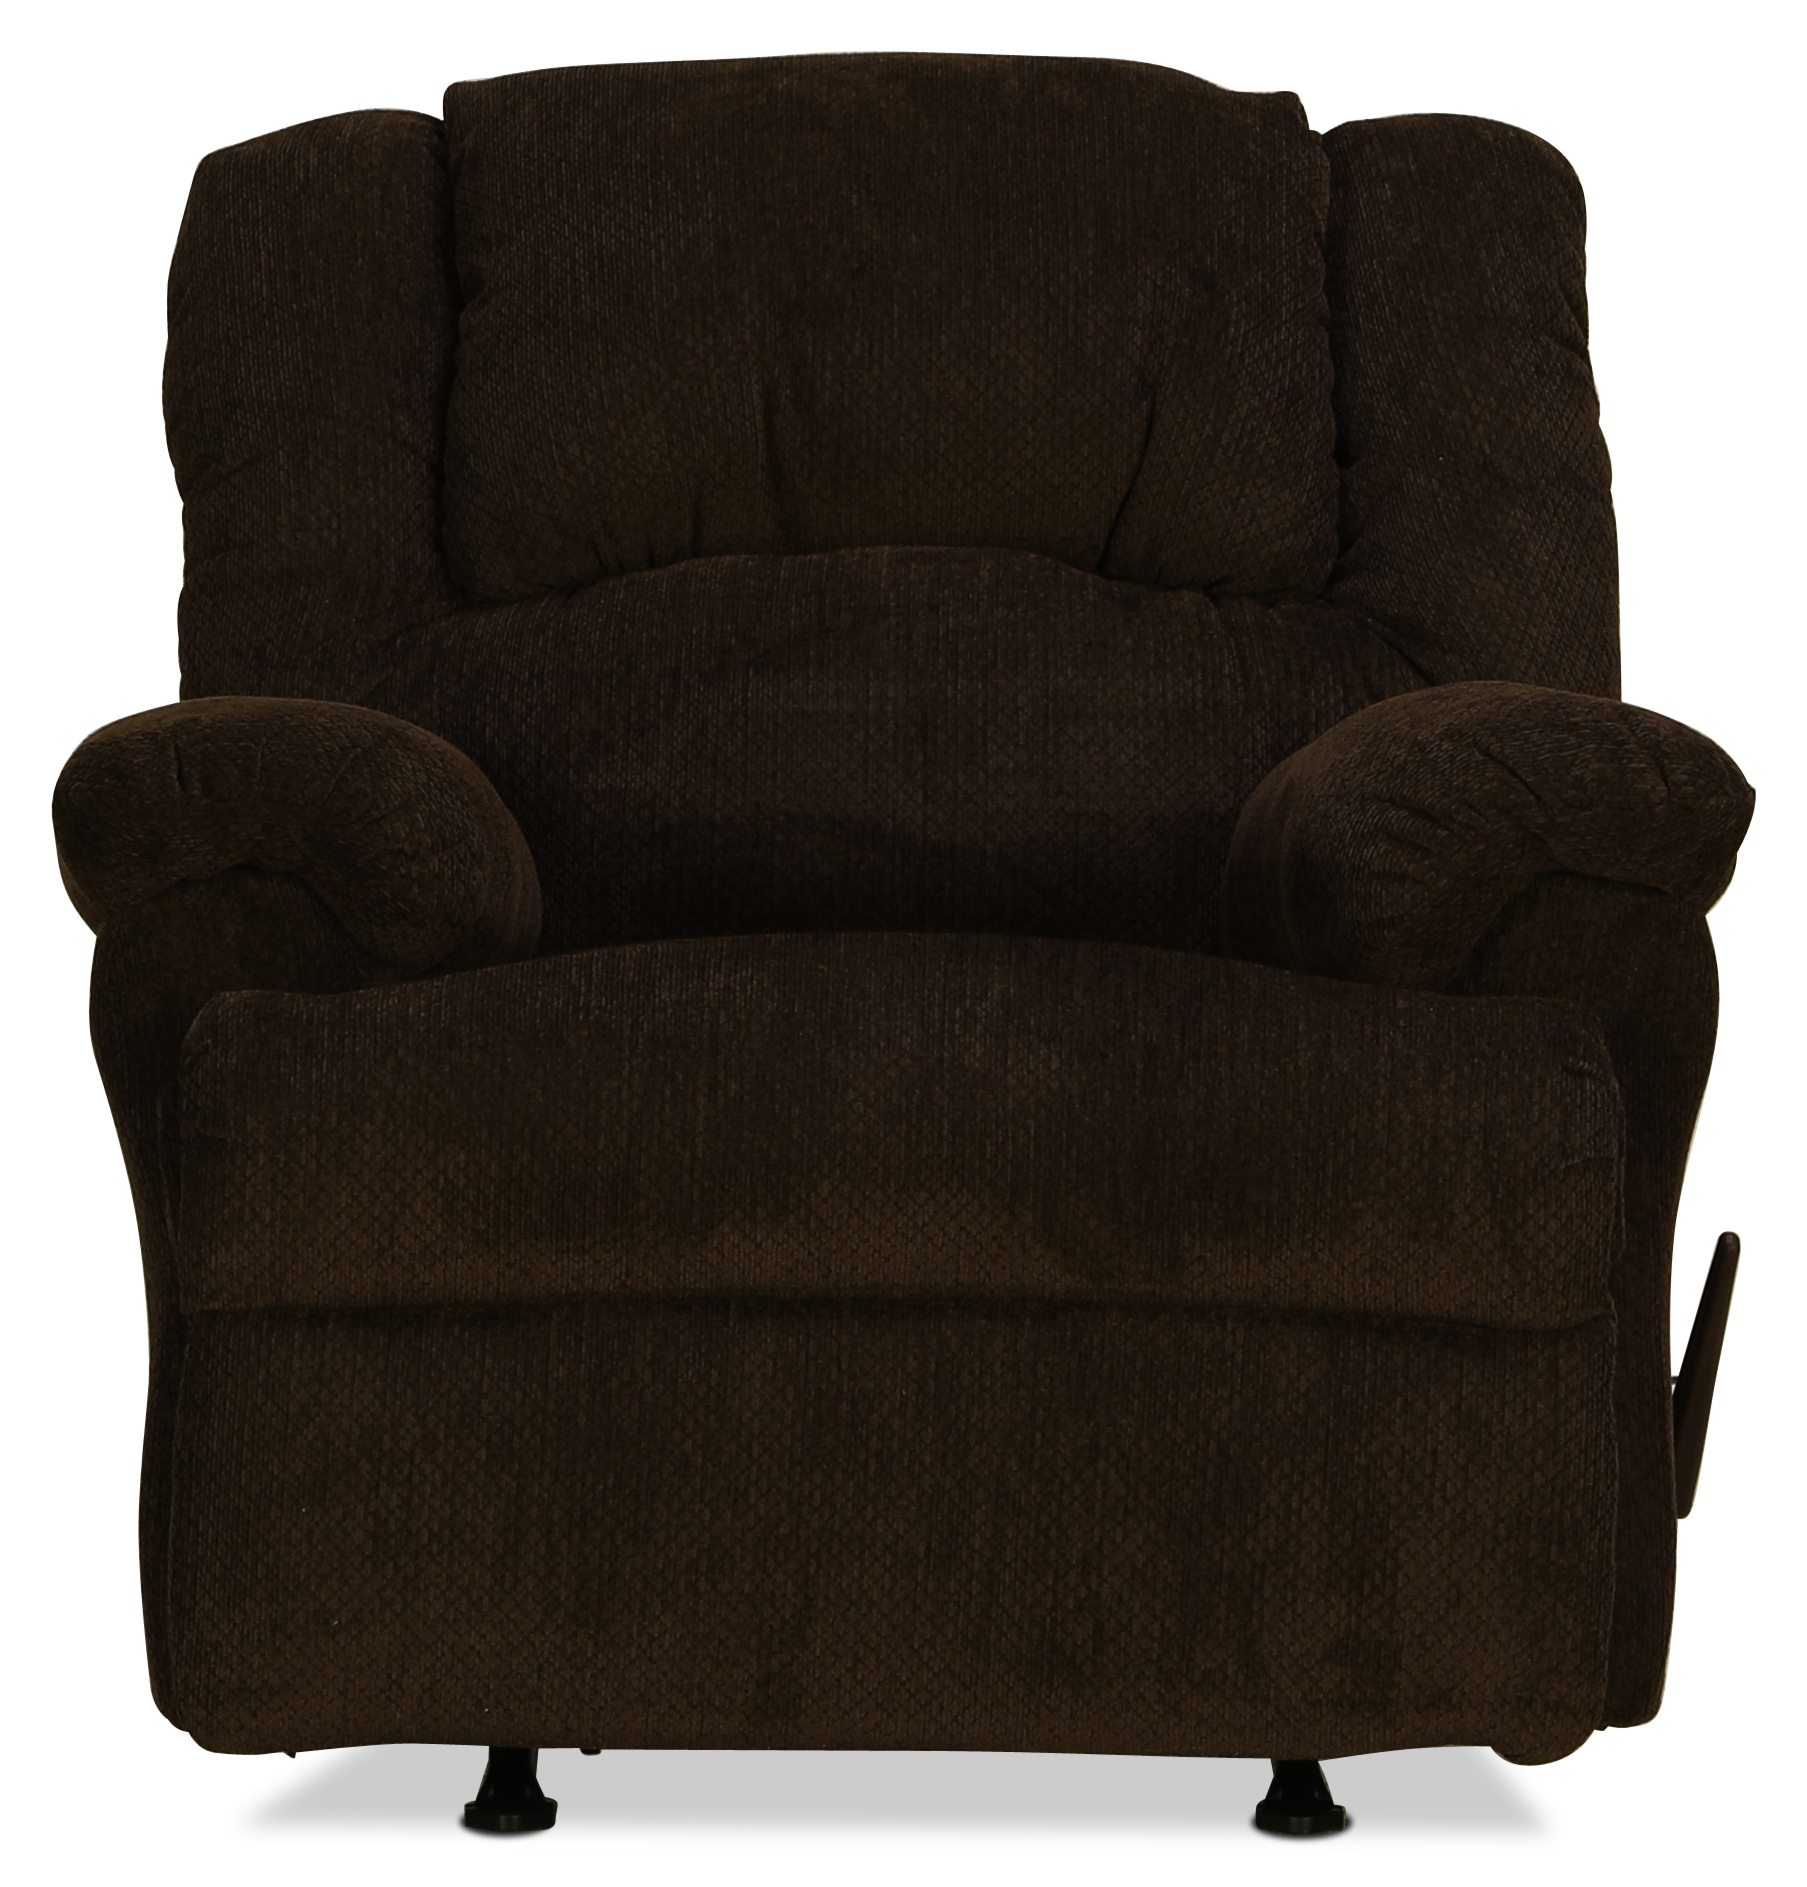 Intended For Trendy Decker Ii Fabric Swivel Glider Recliners (View 7 of 20)